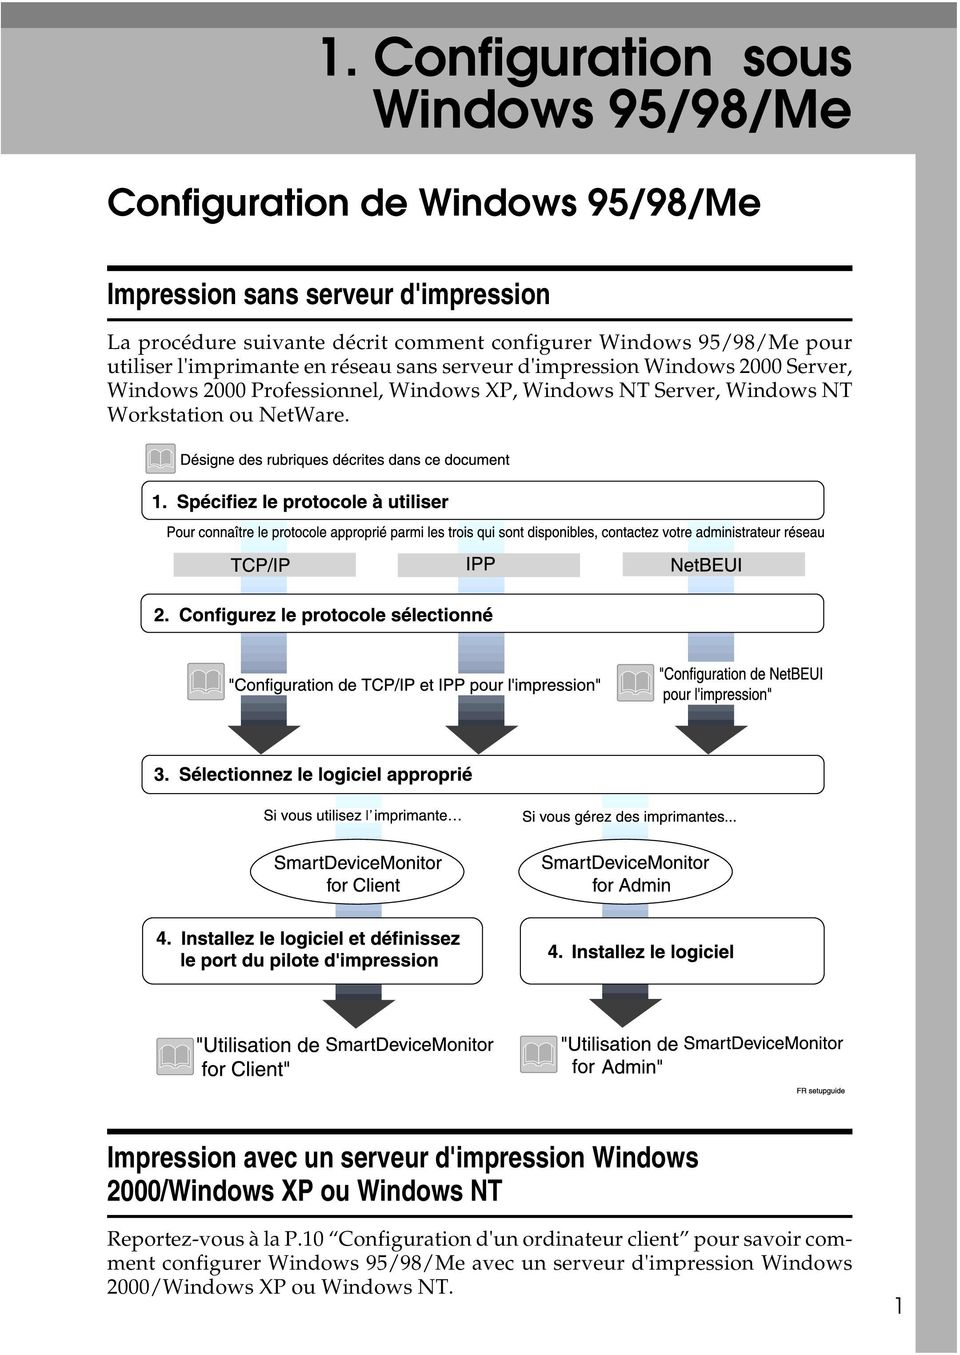 Windows NT Server, Windows NT Workstation ou NetWare. Impression avec un serveur d'impression Windows 2000/Windows XP ou Windows NT Reportez-vous à la P.